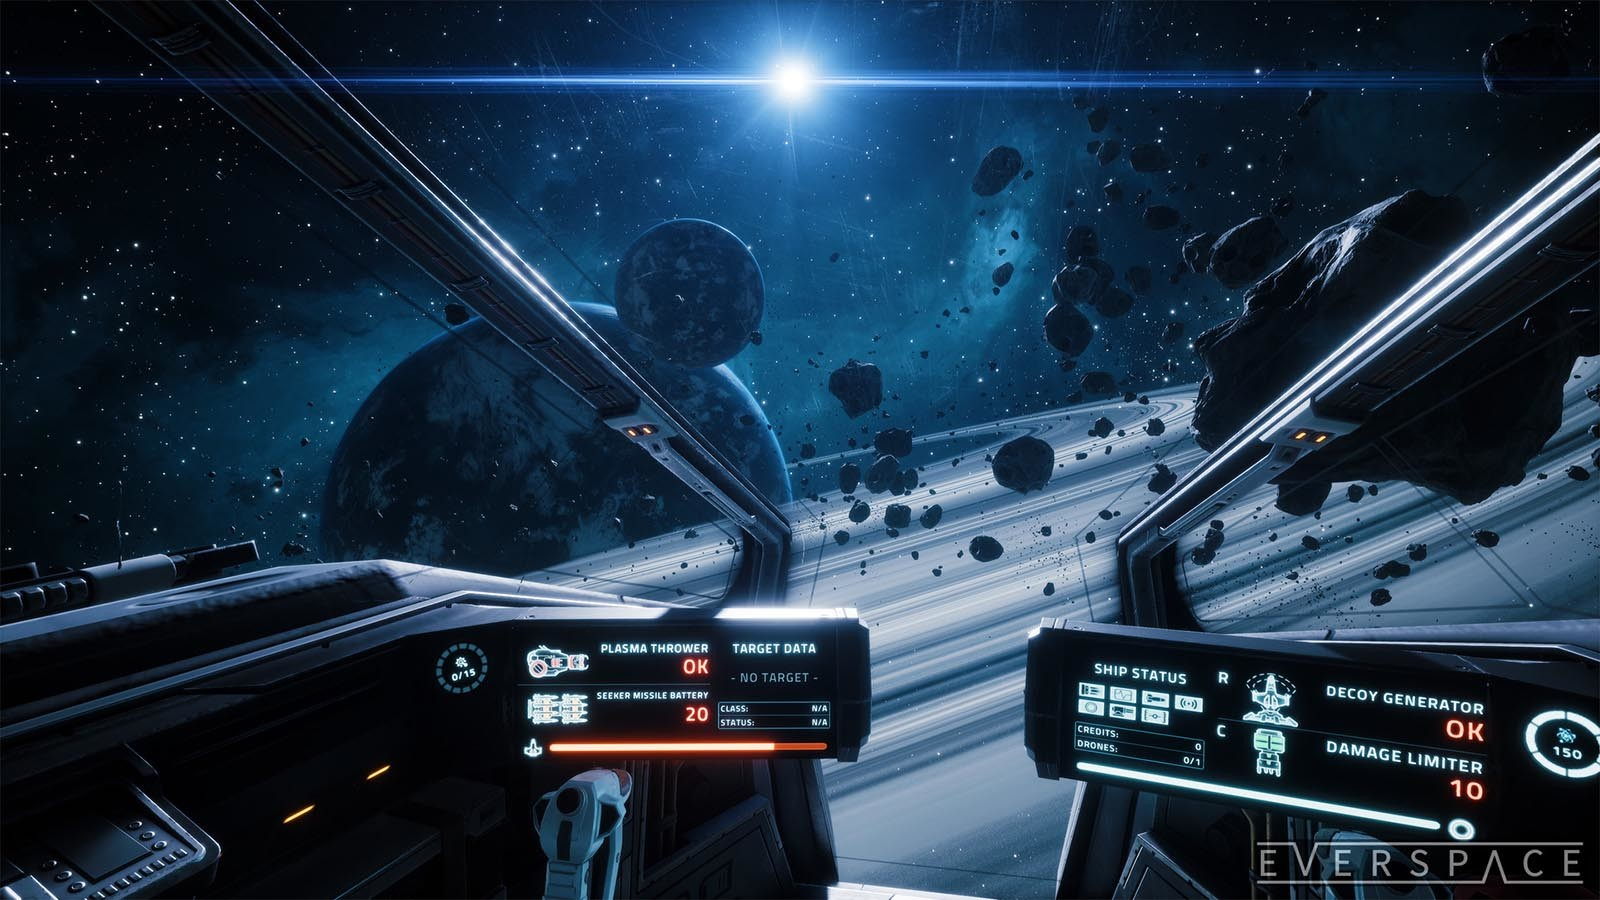 EVERSPACE - Encounters [Steam CD Key] for PC, Mac and Linux - Buy now